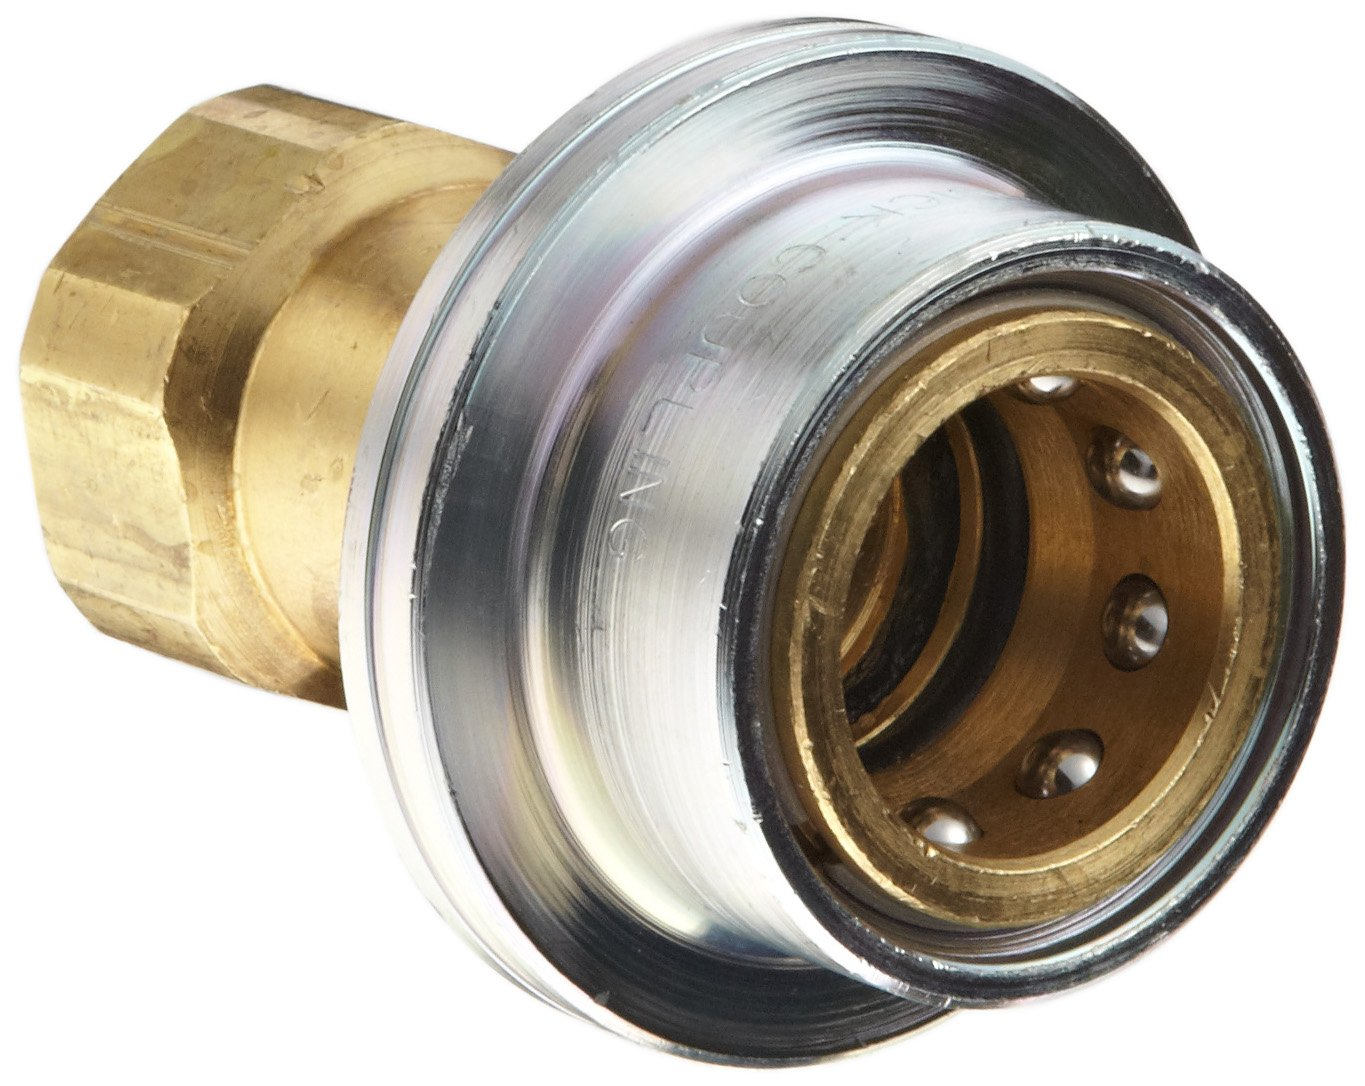 Dixon B16-400S Low price Solid Brass Steam Fitting We OFFer at cheap prices Quick Disconnect Boss